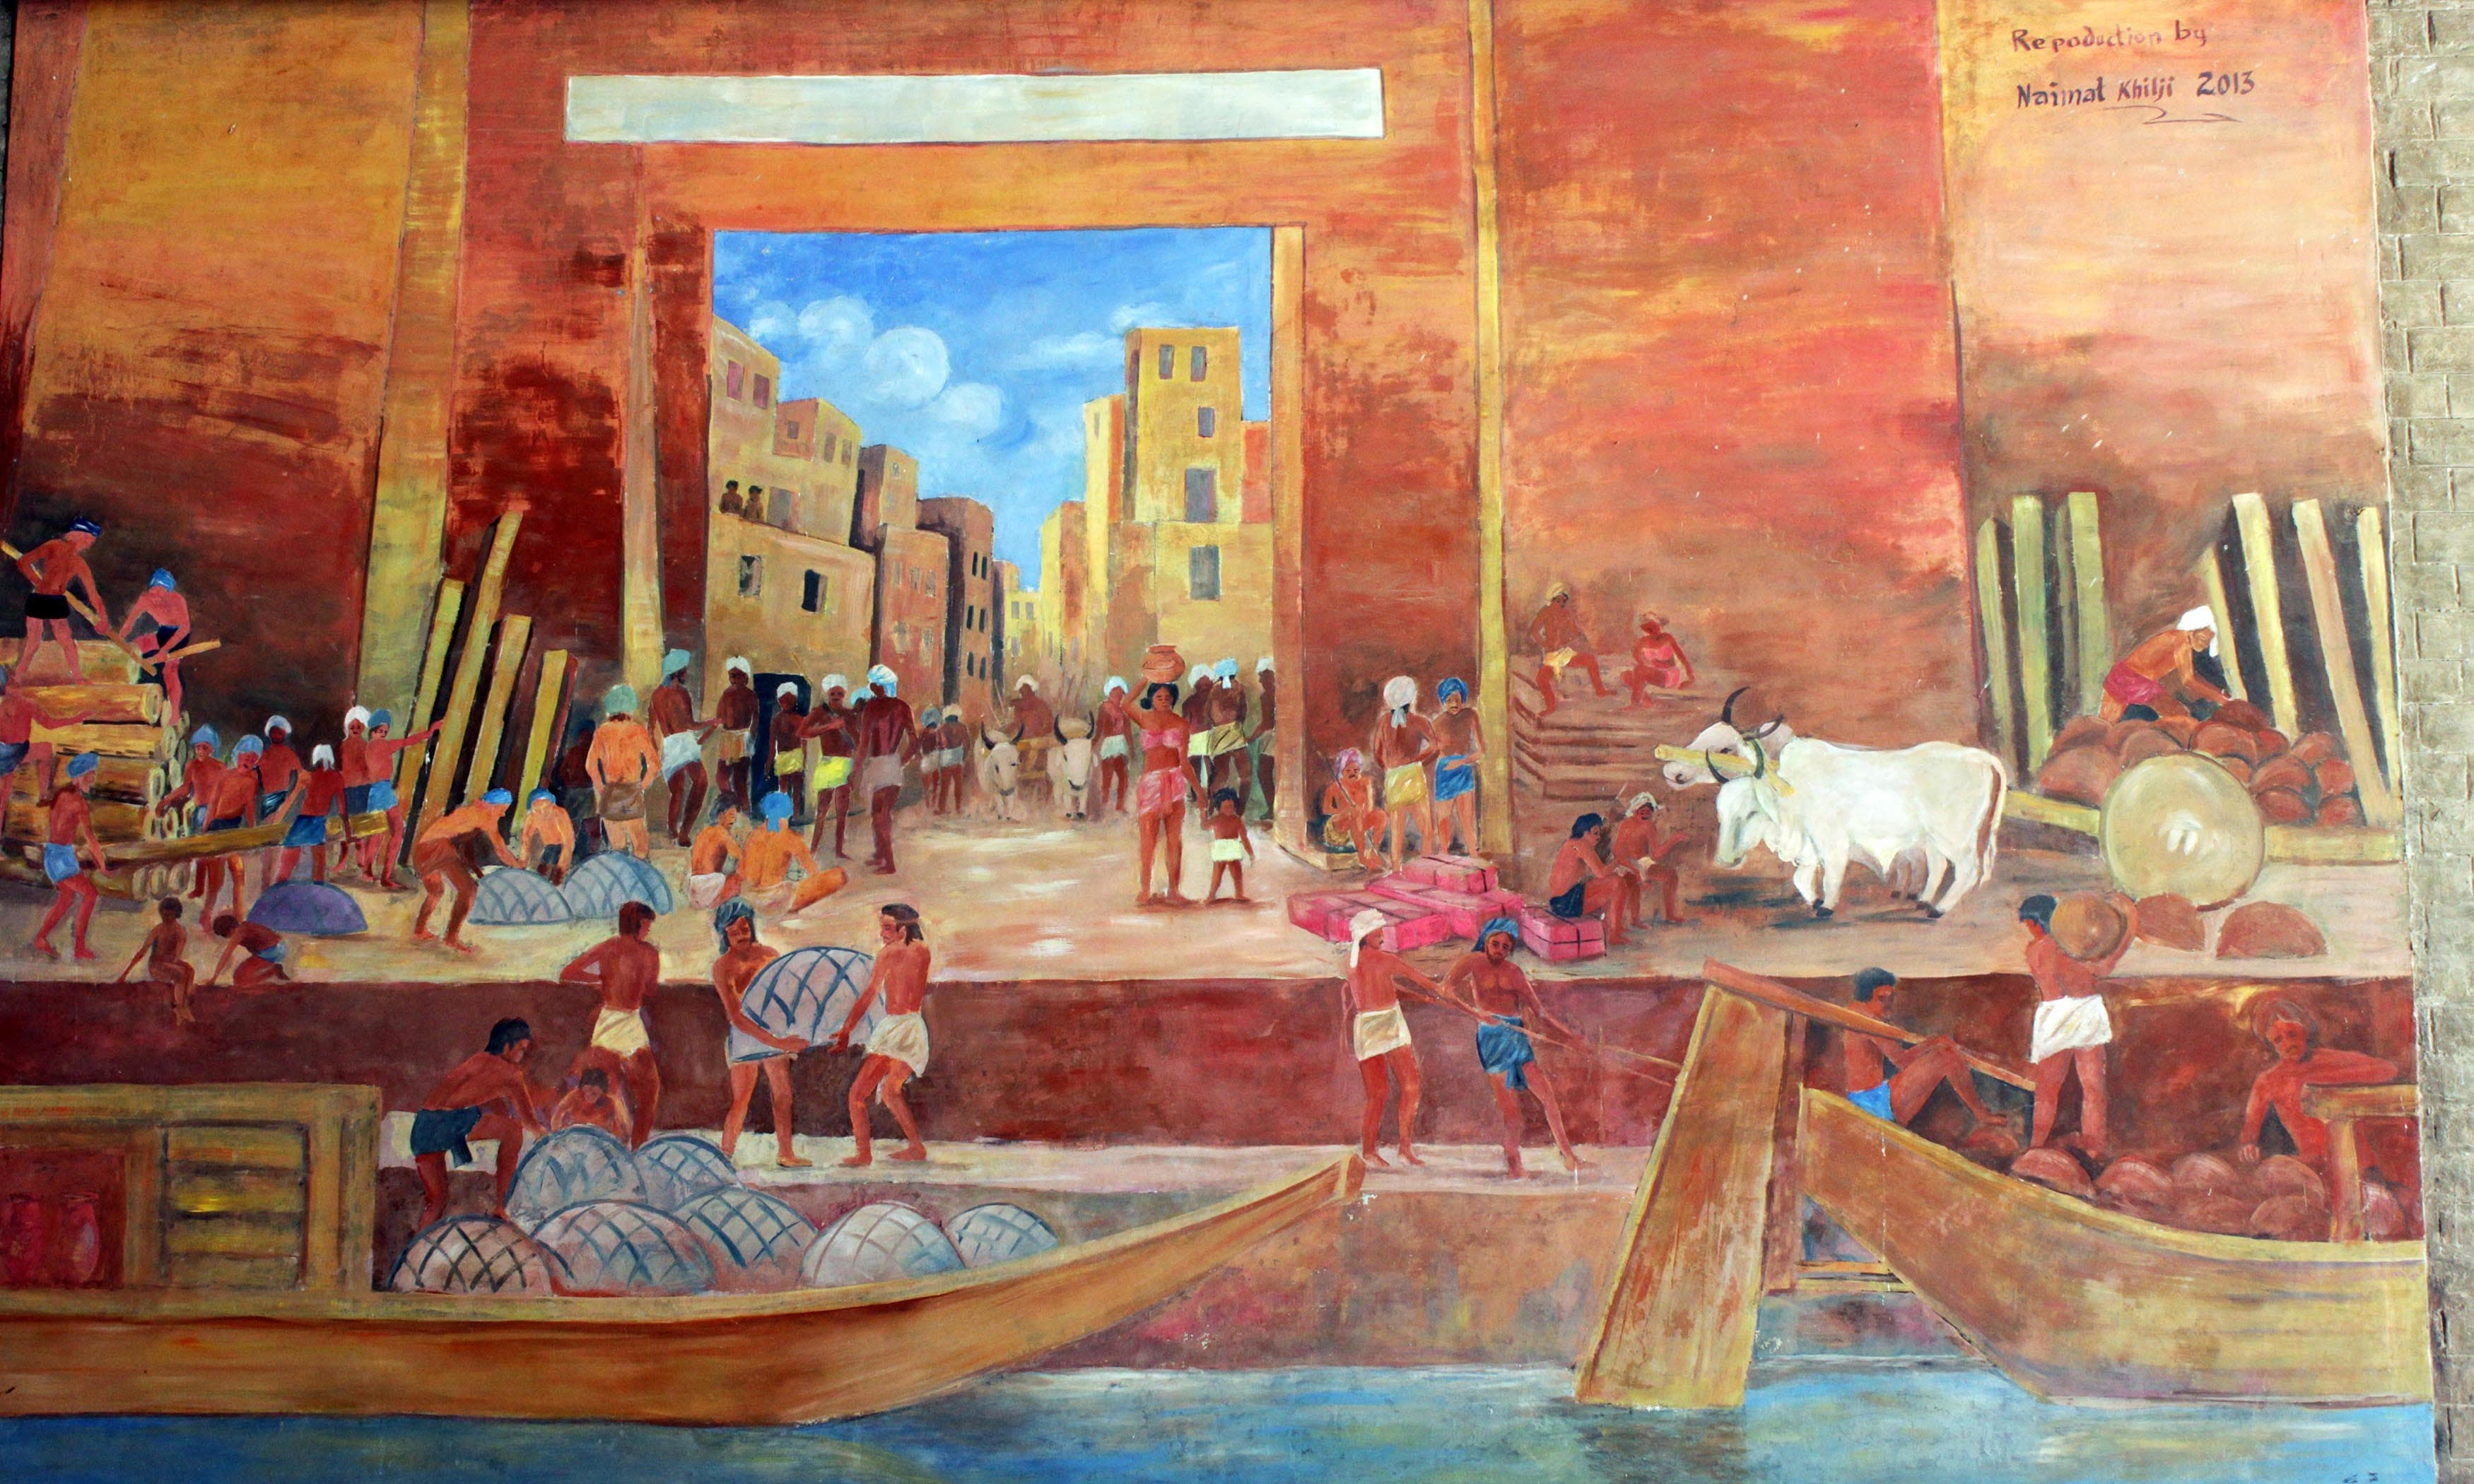 A painting depicting life in the ancient city. —Tauseef Razi Mallick